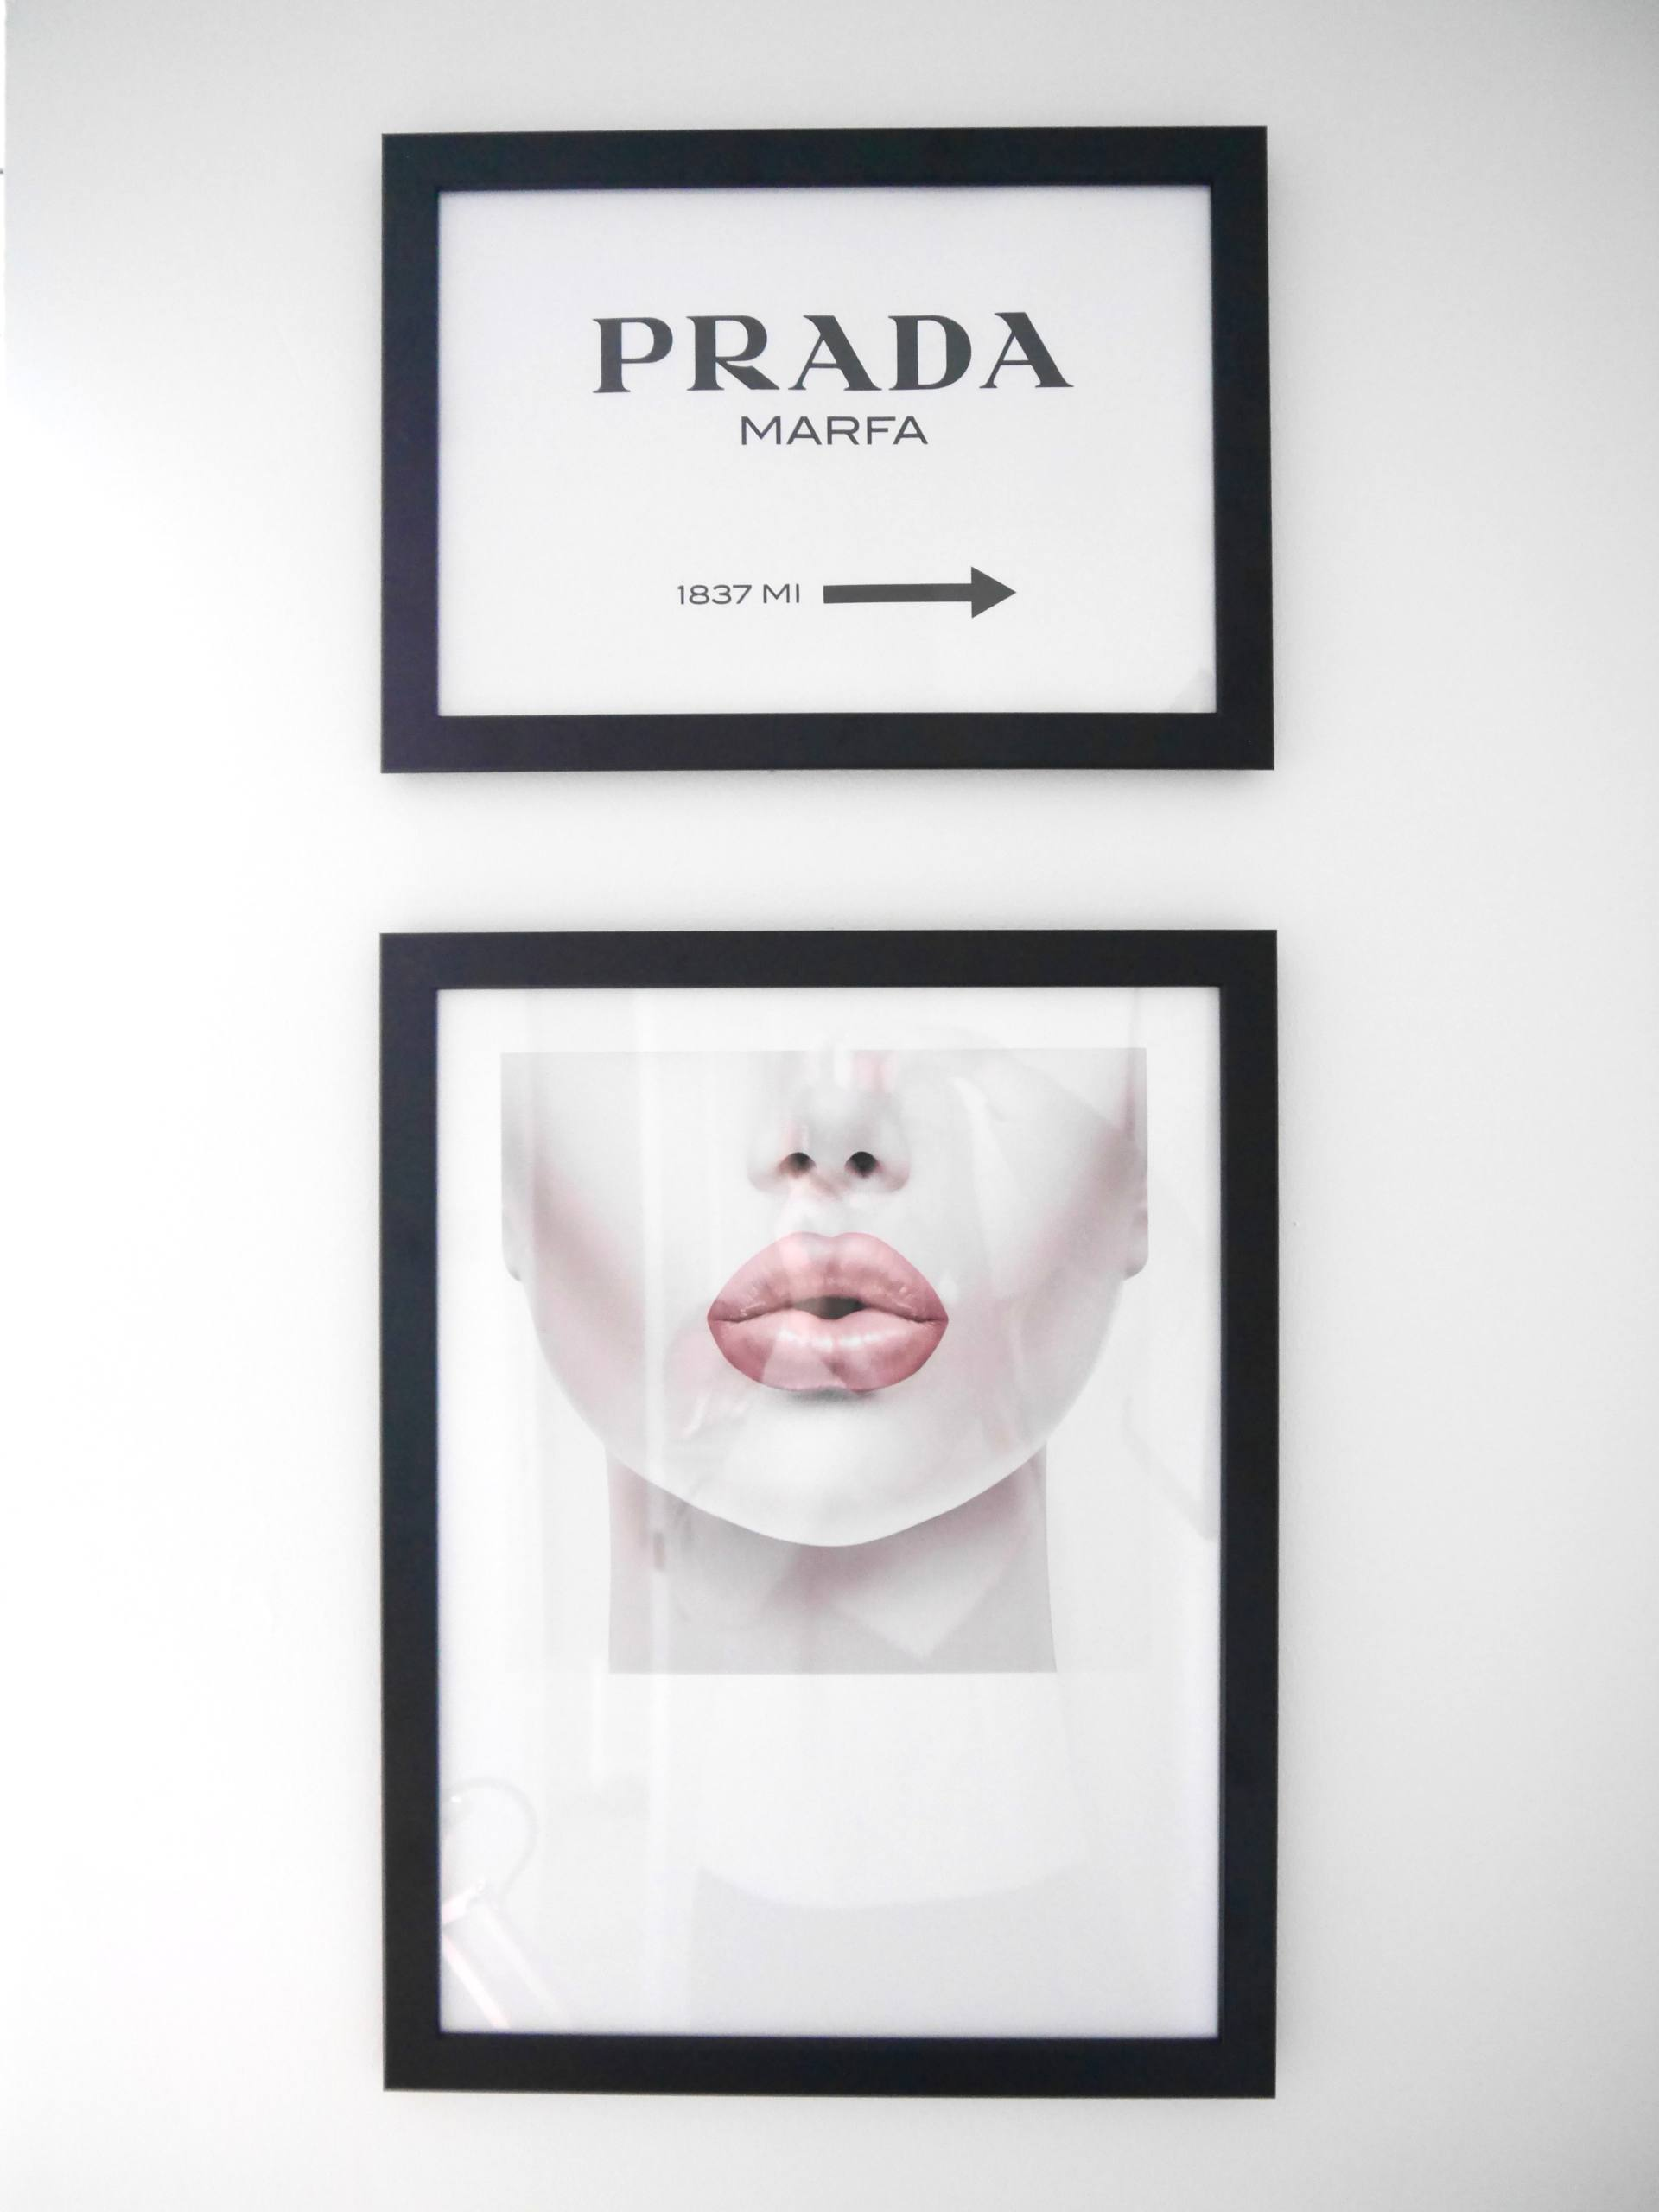 Desenio Framed Posters Prada and Lips